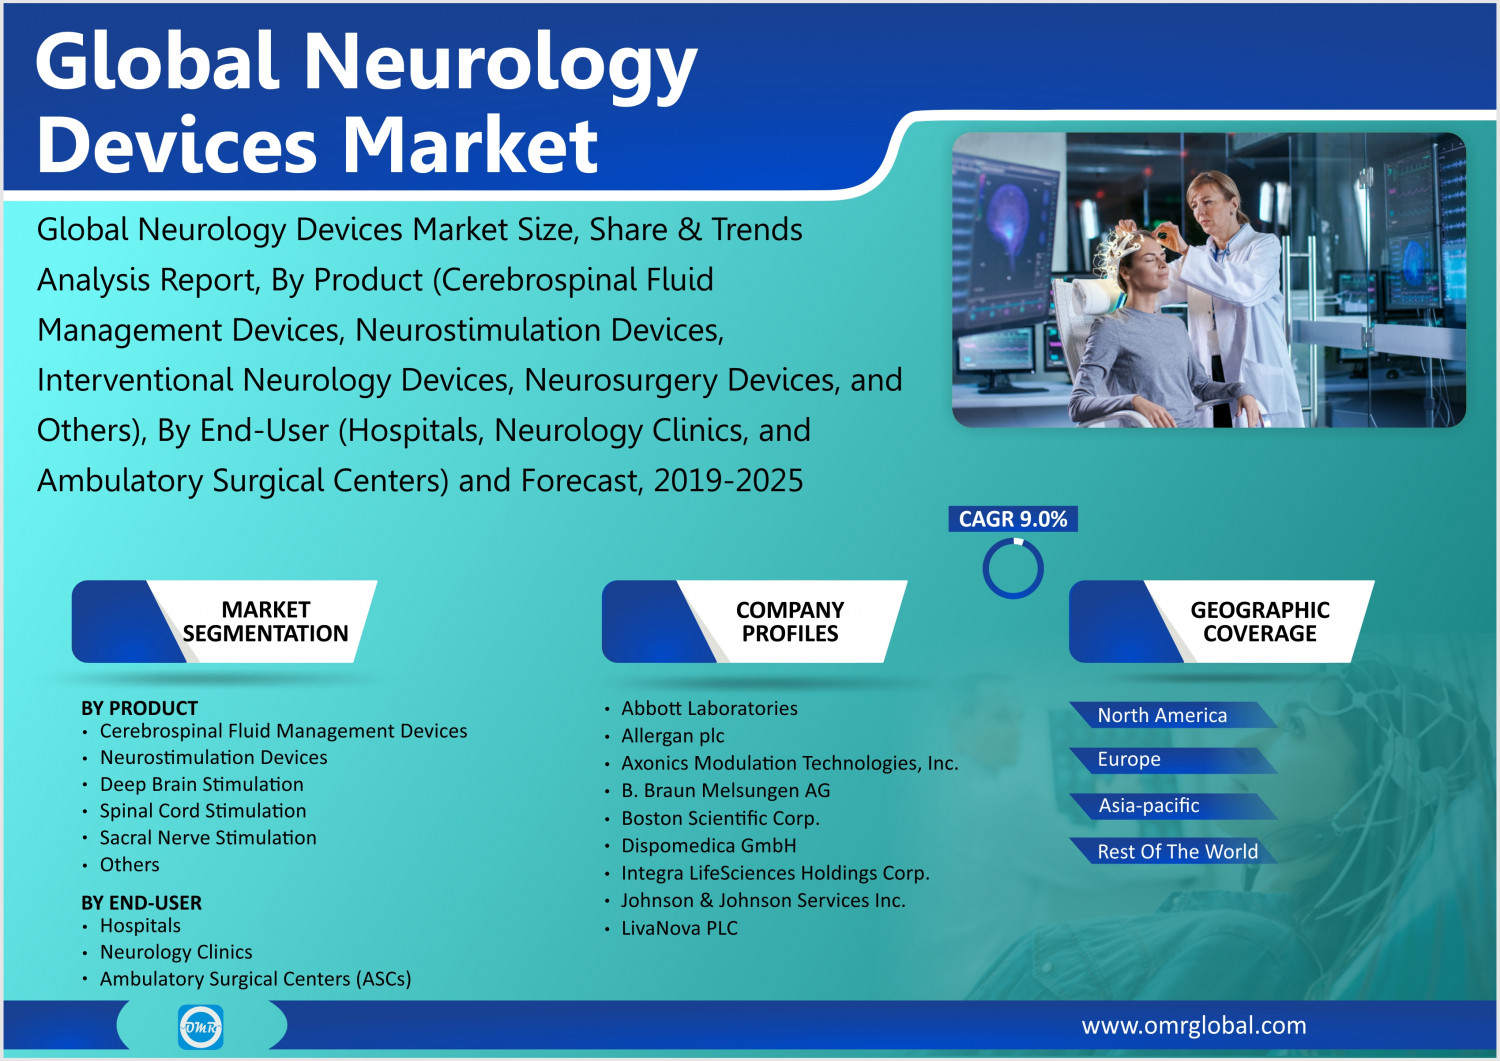 Neurology Devices Market Share, Trends, Growth, Future Prospects, Forecast 2019 to 2025 Infographic